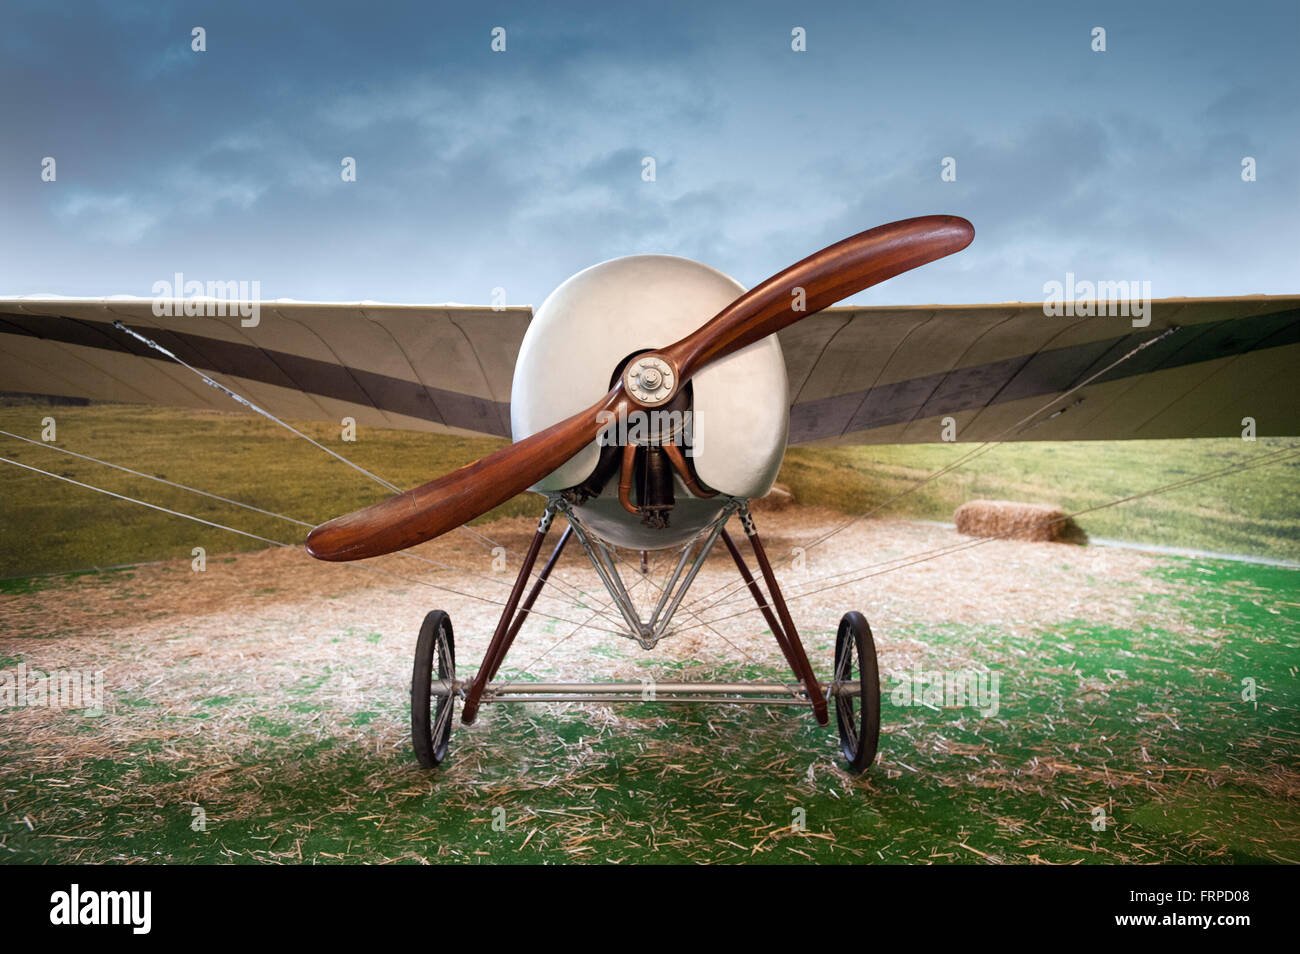 Old vintage monoplane airplane with a wooden propeller parked in a field in a landscape, front view Stock Photo